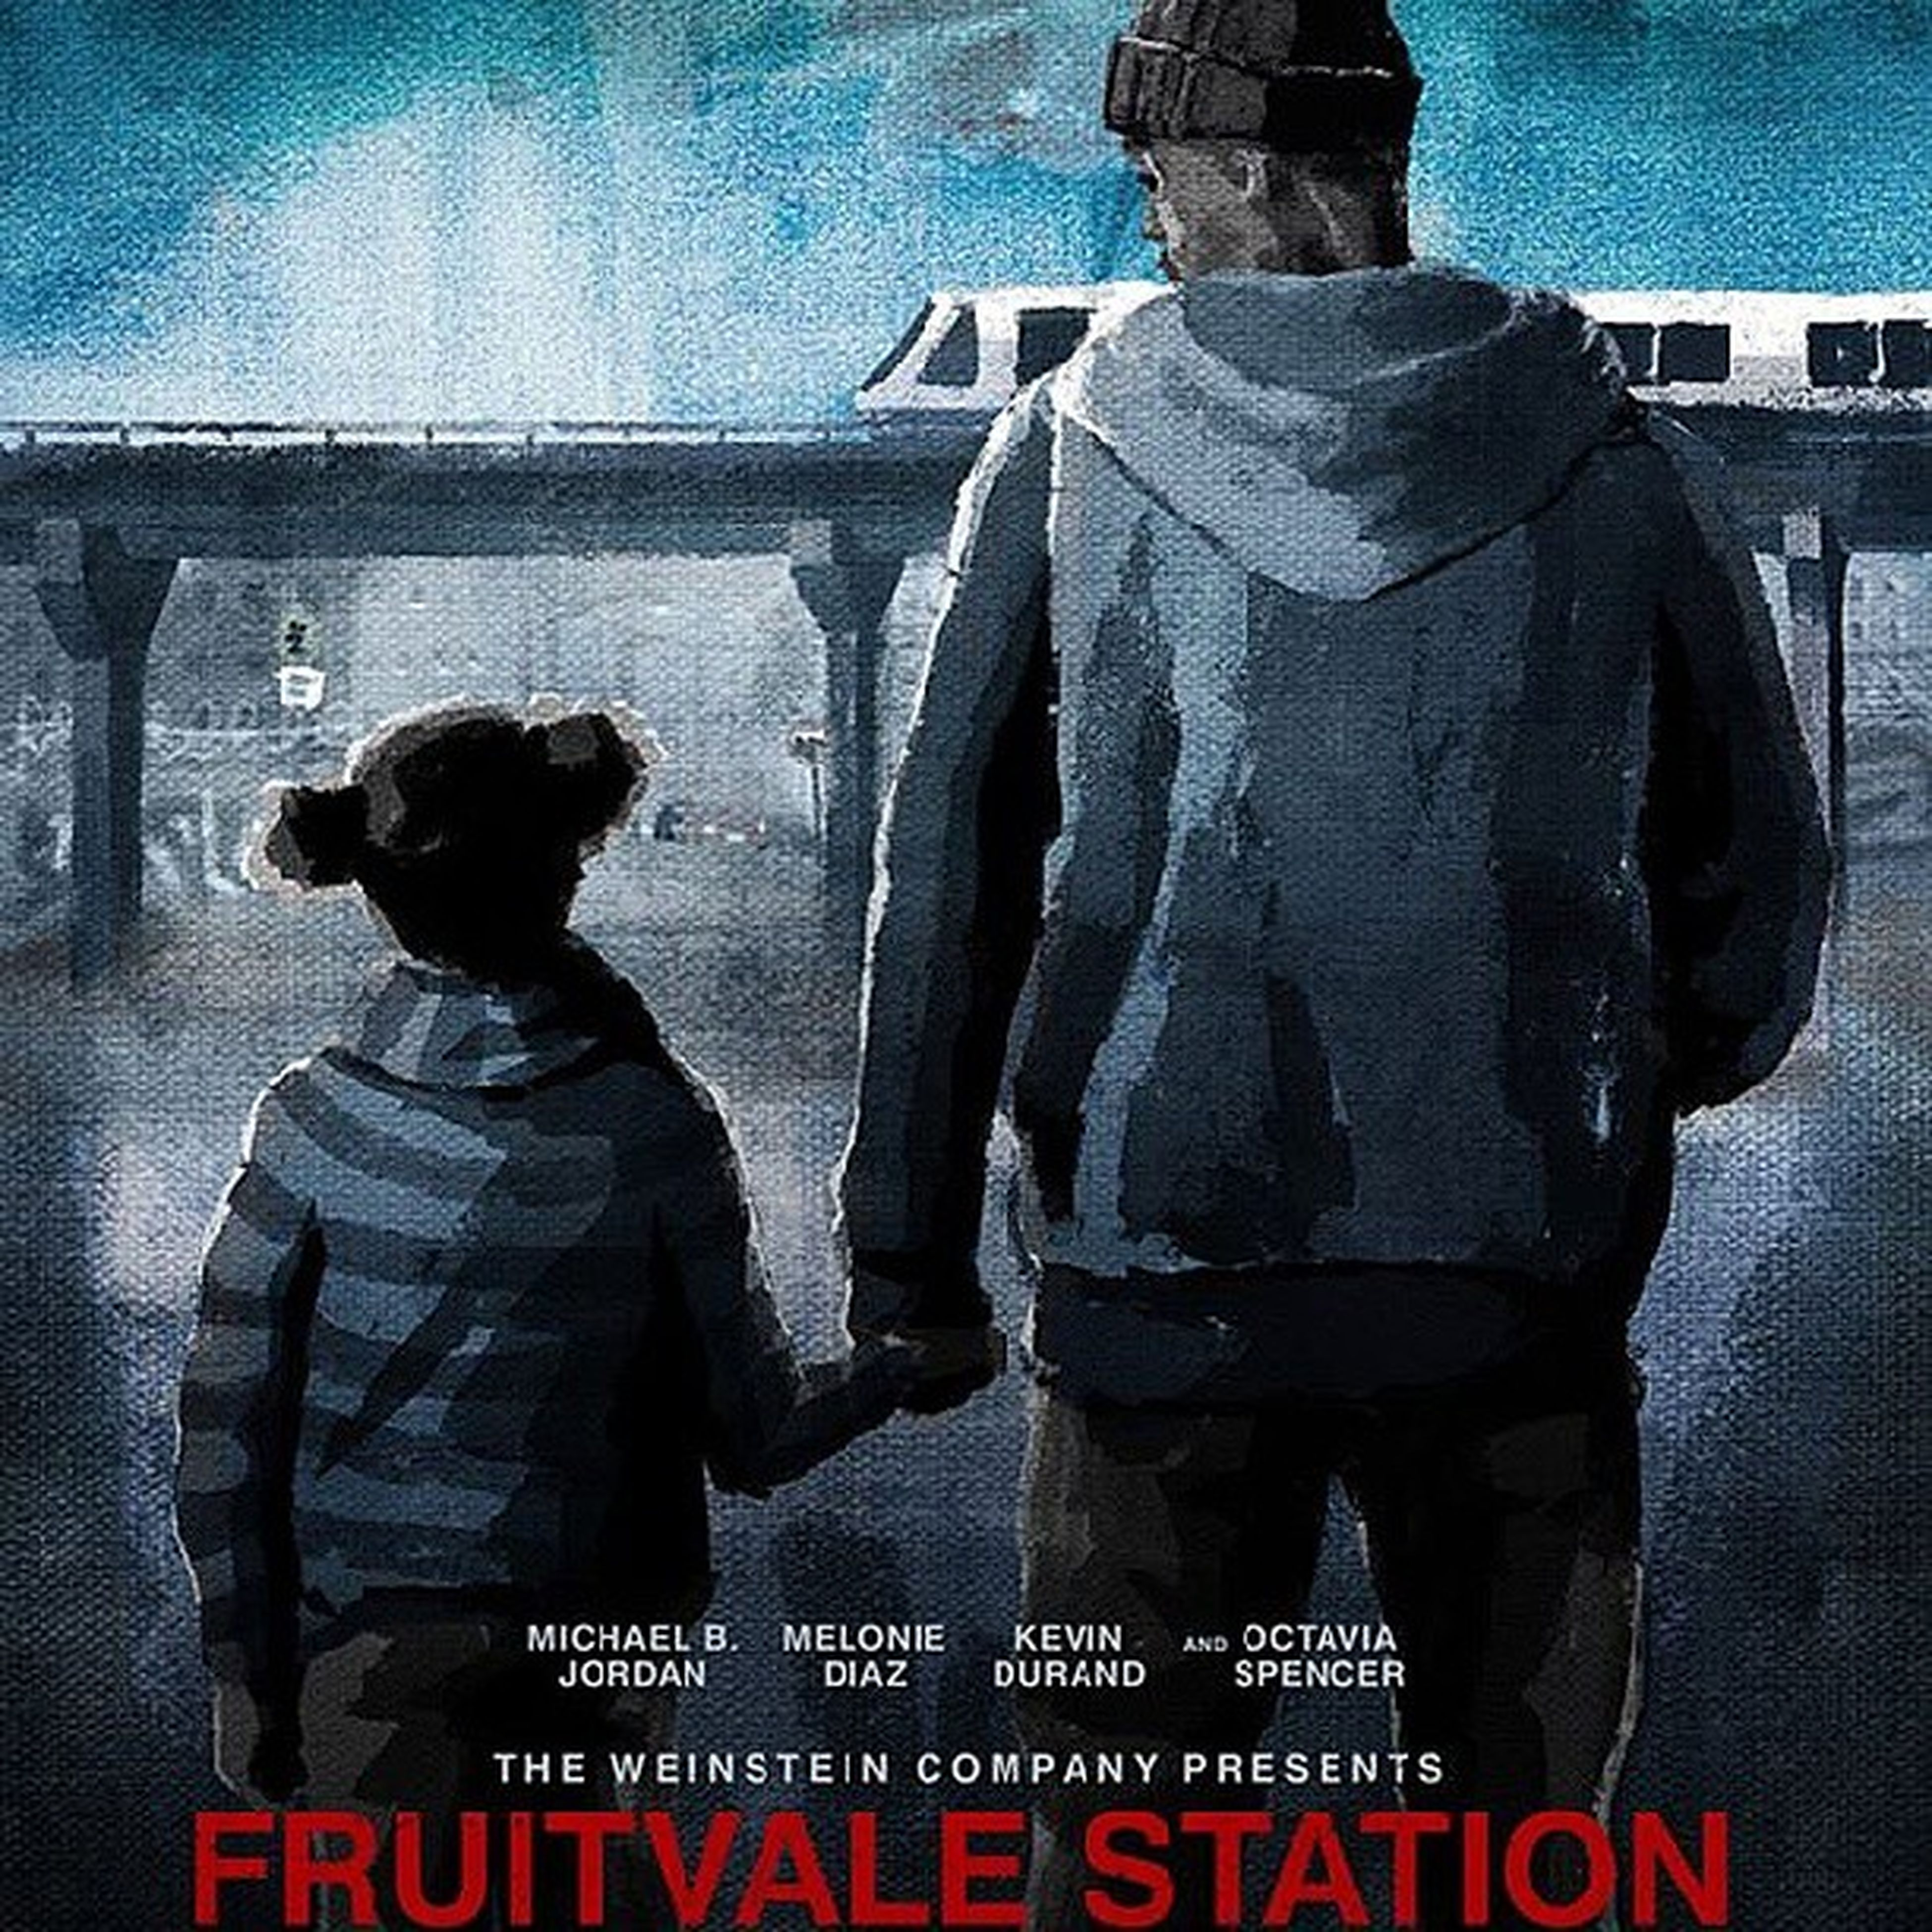 A really GOOD MOVIE... Sad, but GOOD... (***1/2 stars out of 4) HighlyRecommend